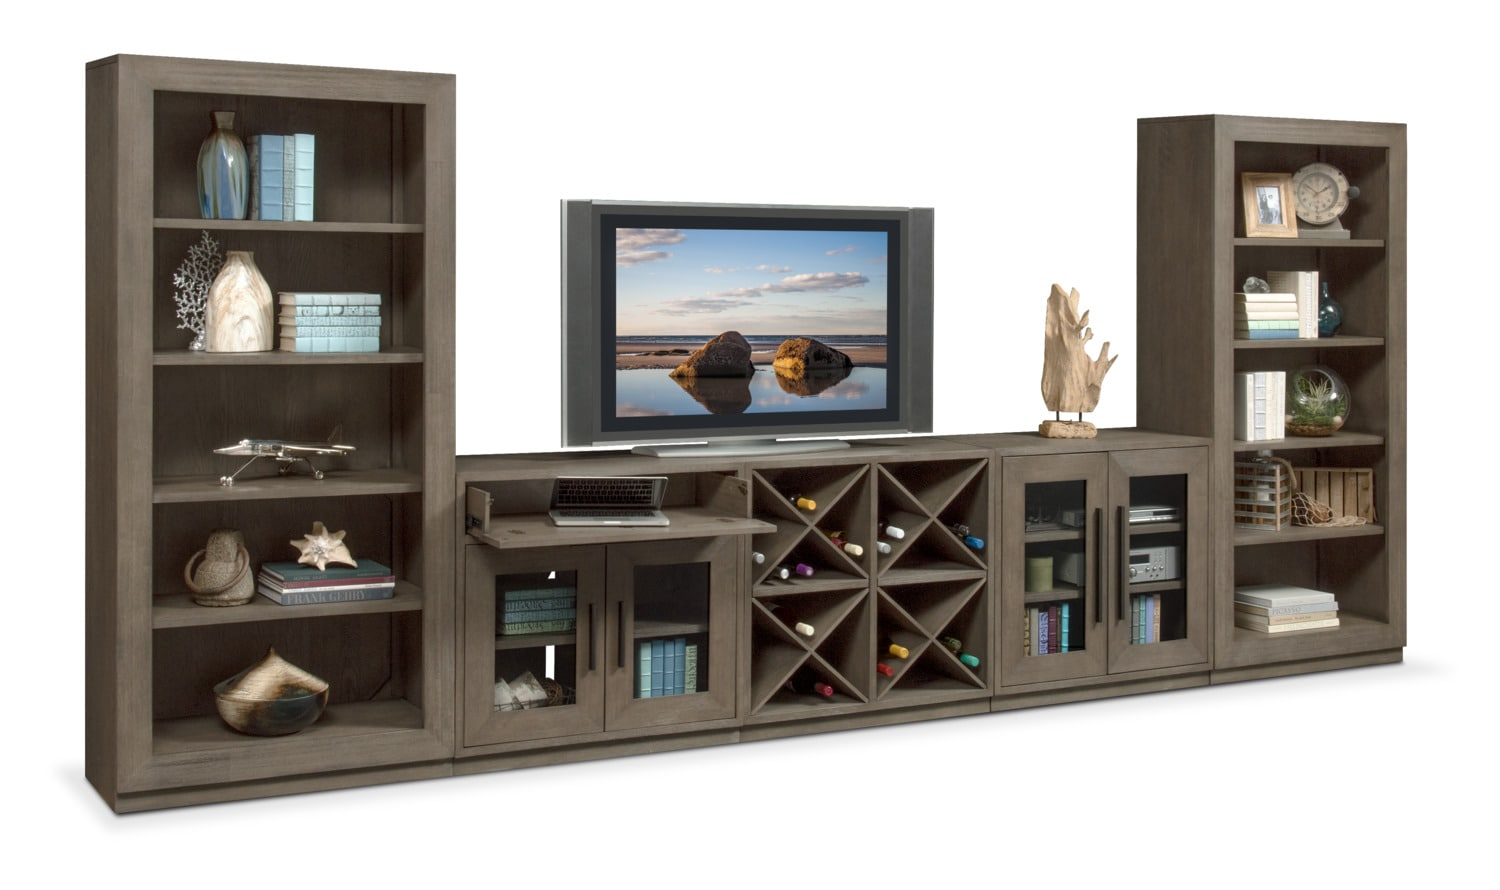 T V Stands \u0026 Media Centers | Value City Furniture and Mattresses